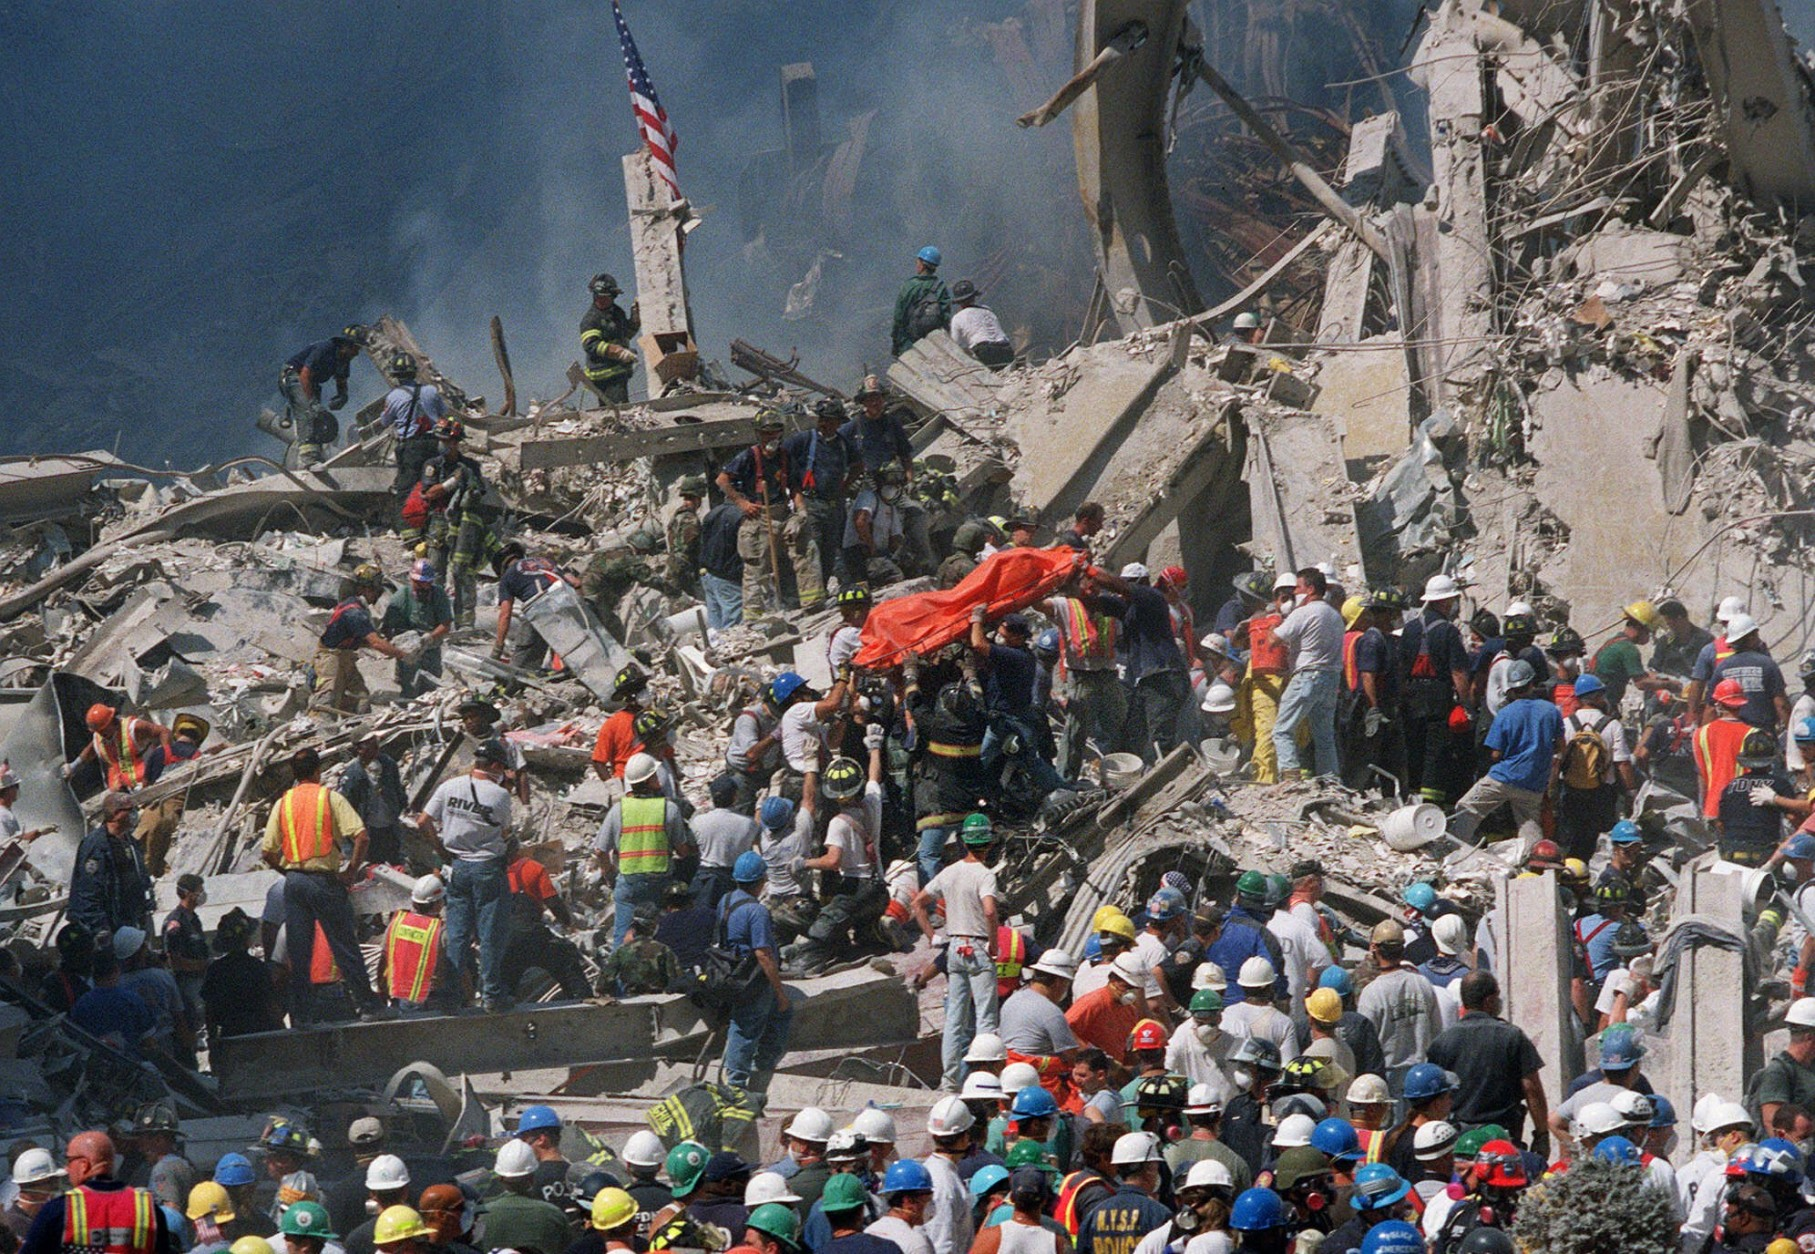 Emergency personnel carry an orange body bag with the remains of a victim of the World Trade Center crash, Thursday, Sept. 13, 2001. Two hijacked airliners crashed into the towers of the World Trade Center on Tuesday, Sept. 11, destroying both buildings. (AP Photo/Bill Farrington)